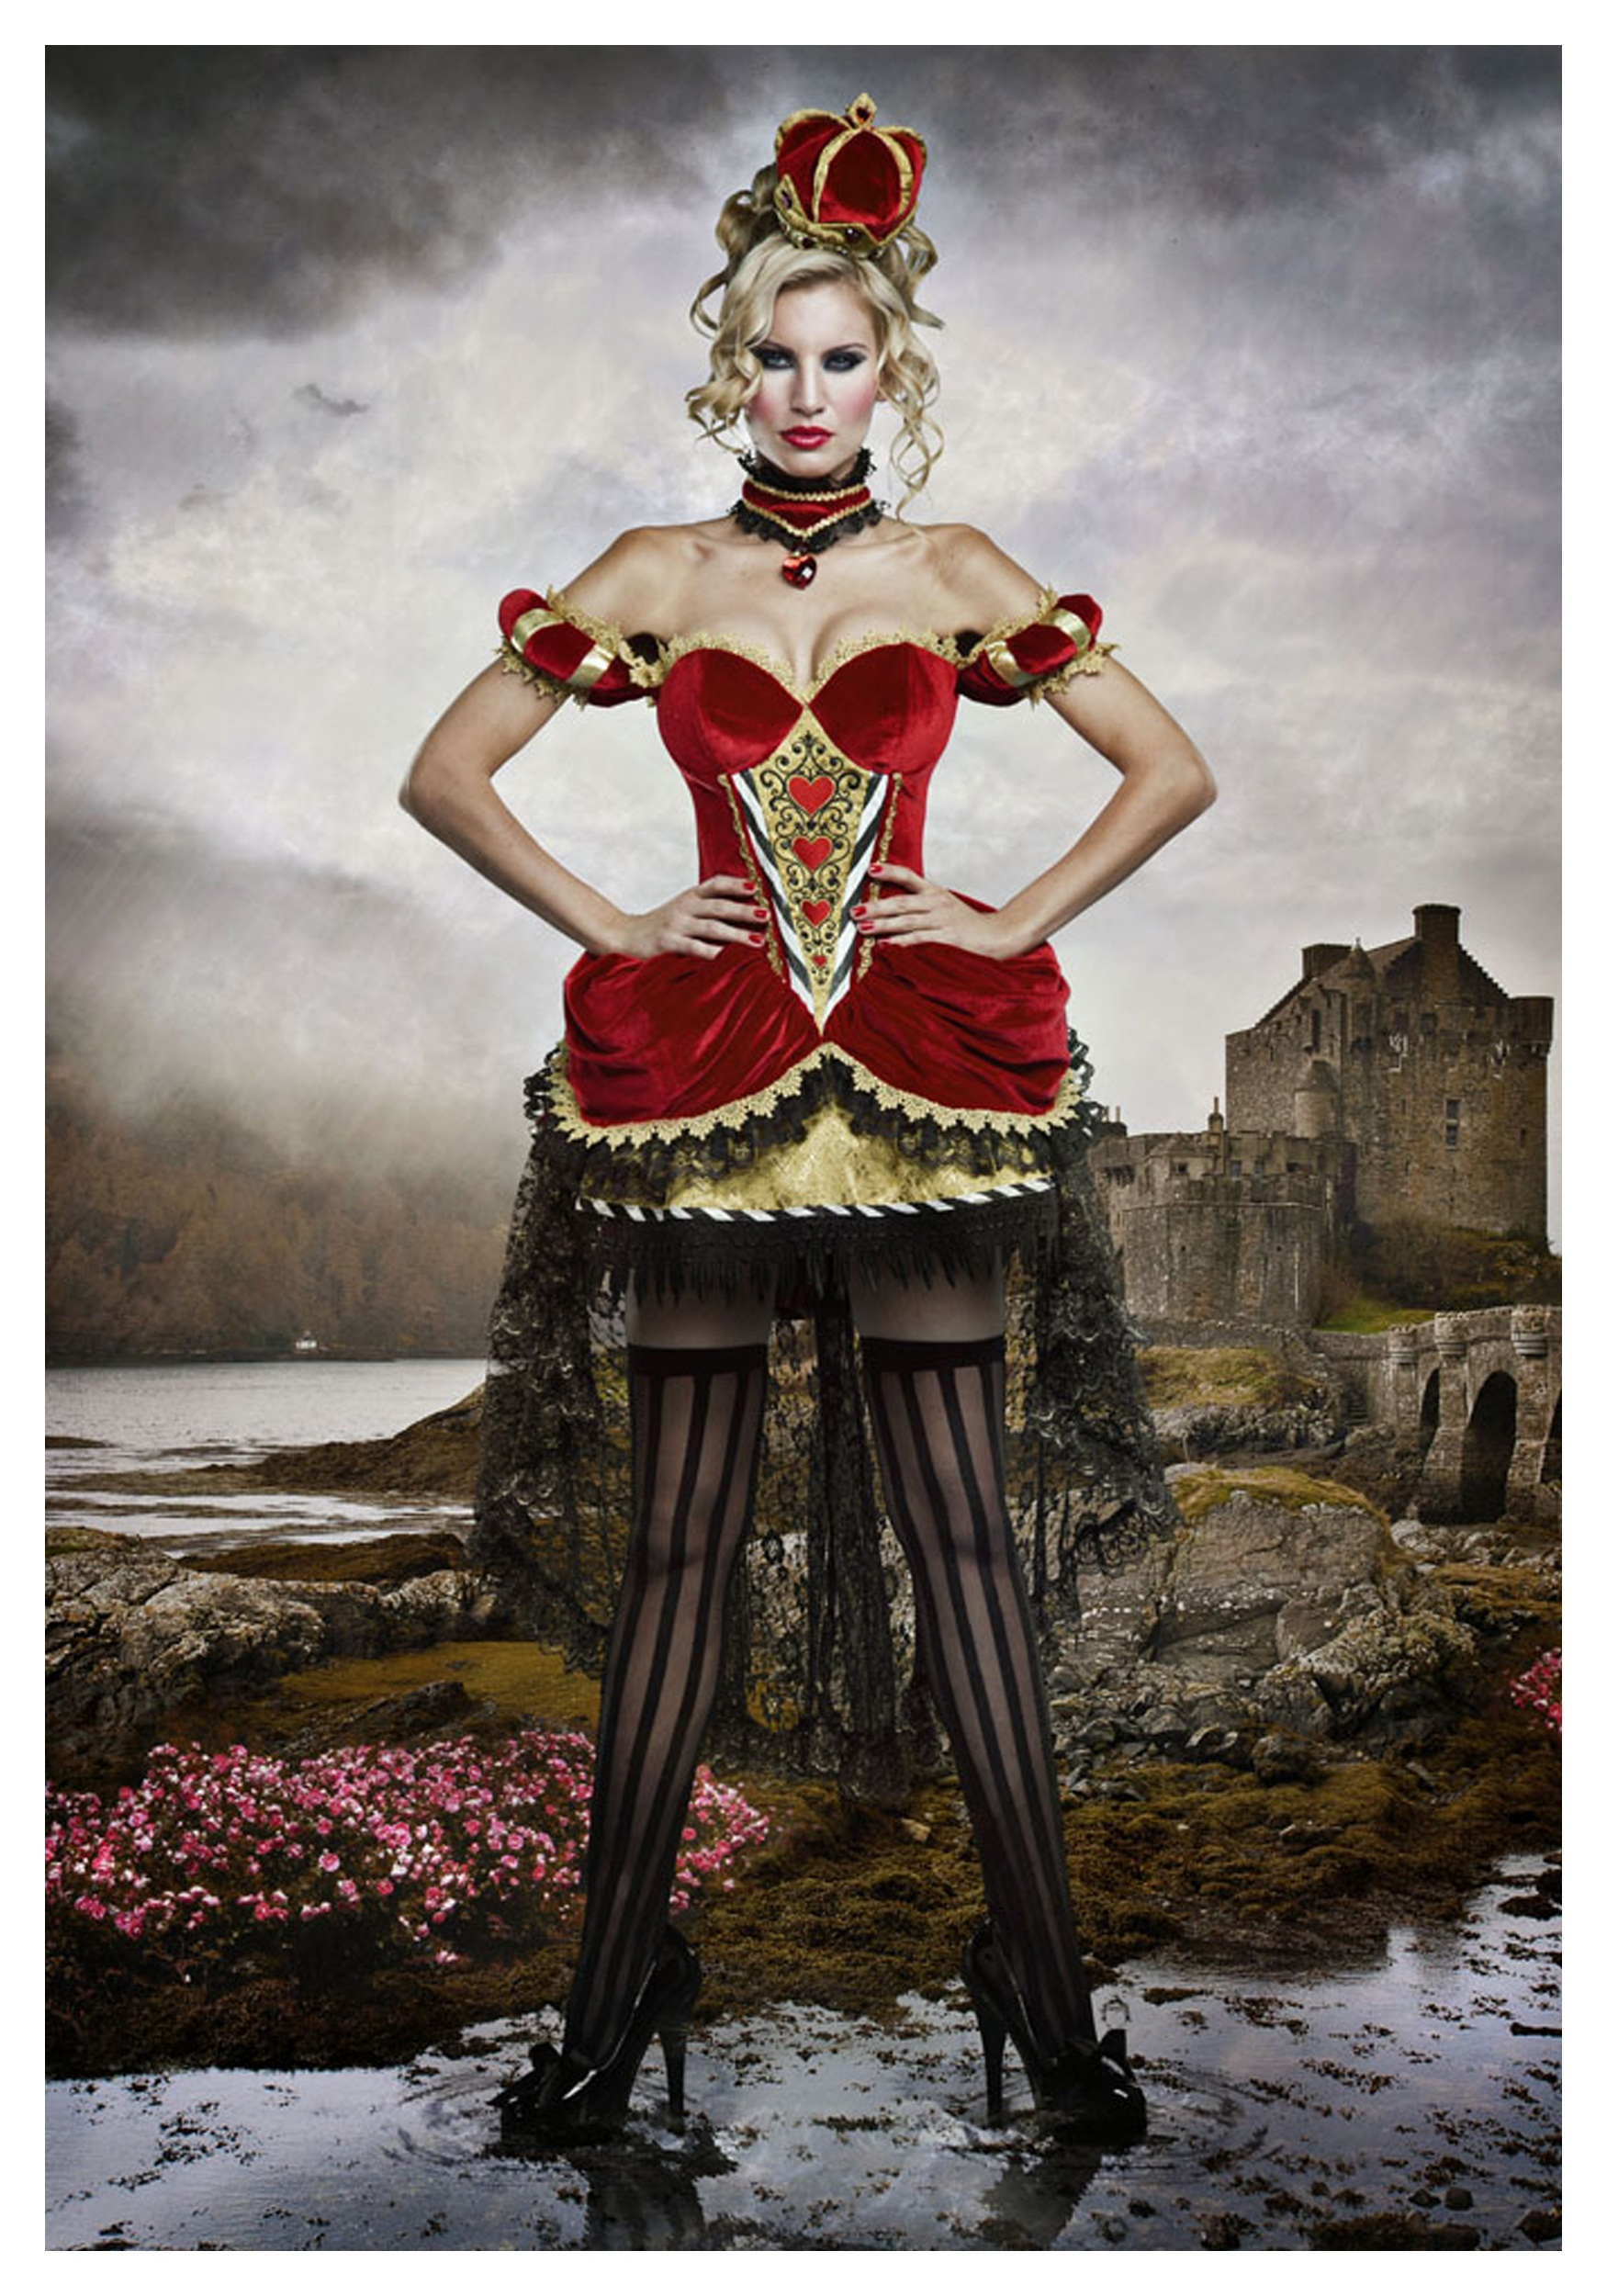 Deluxe Sexy Queen Of Hearts Red Velvet and Gold Corset Costume Dress - DeluxeAdultCostumes.com